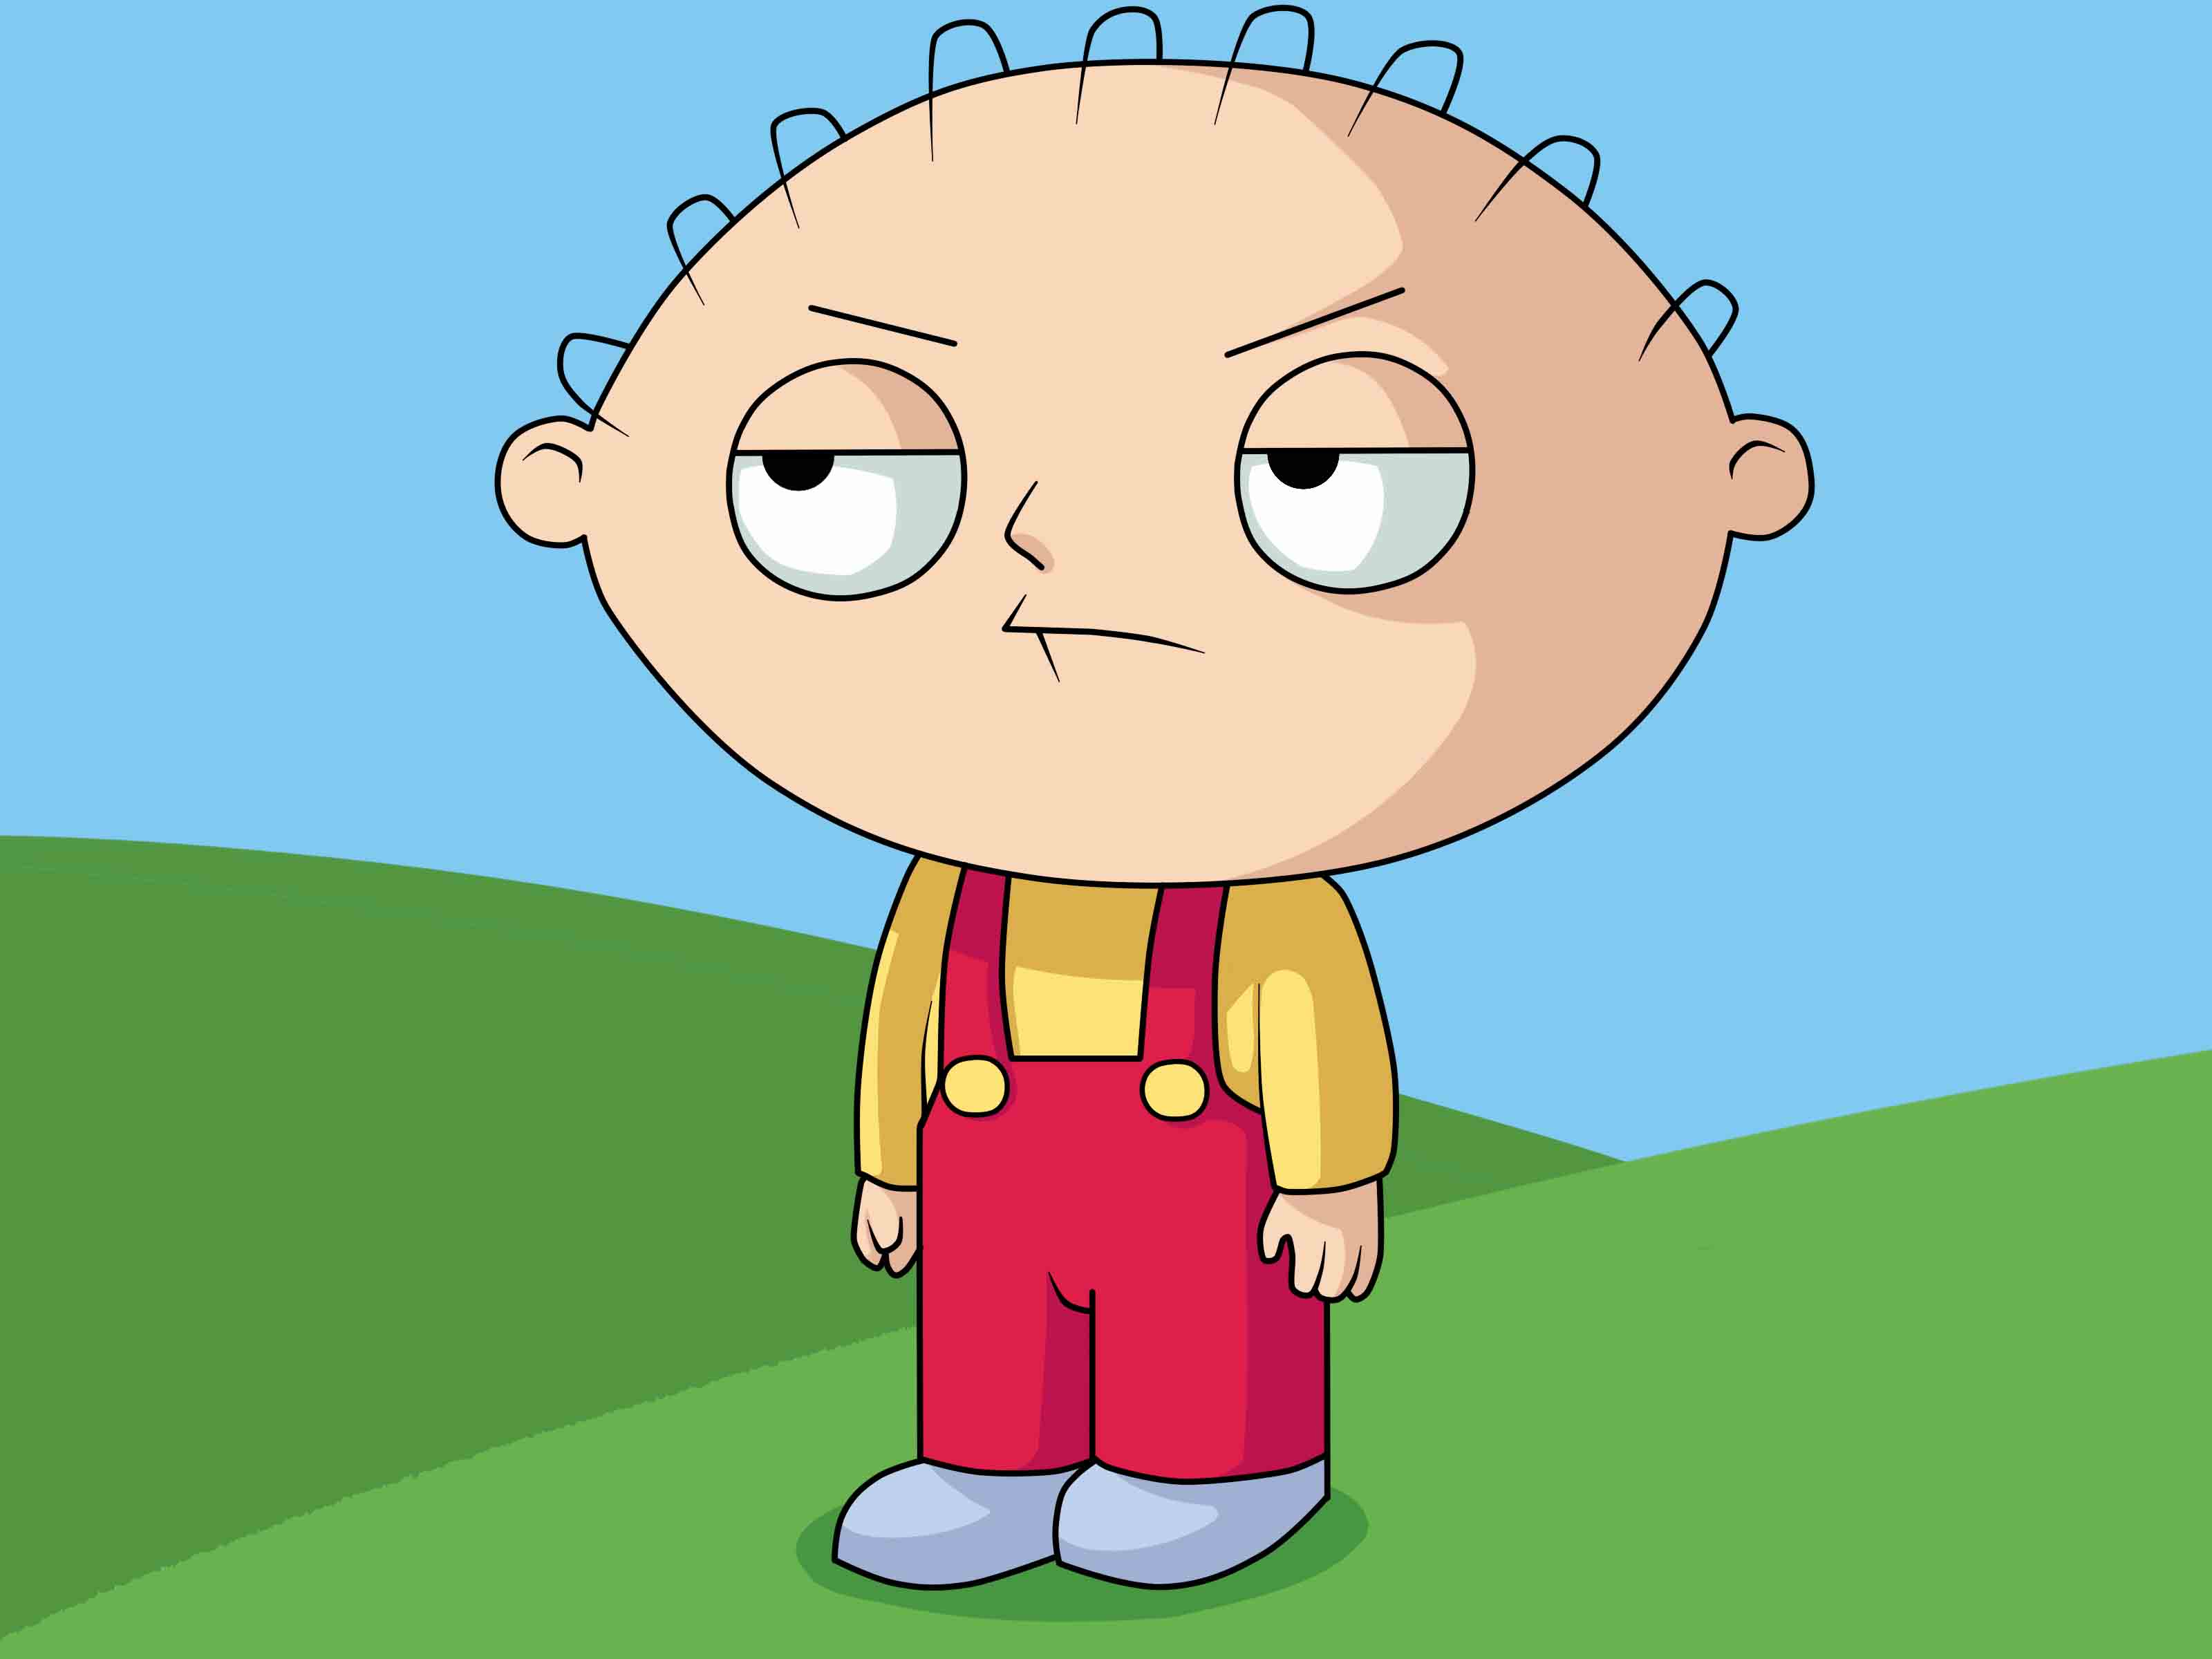 3200x2400 How To Draw Stewie From Family Guy (With Pictures)